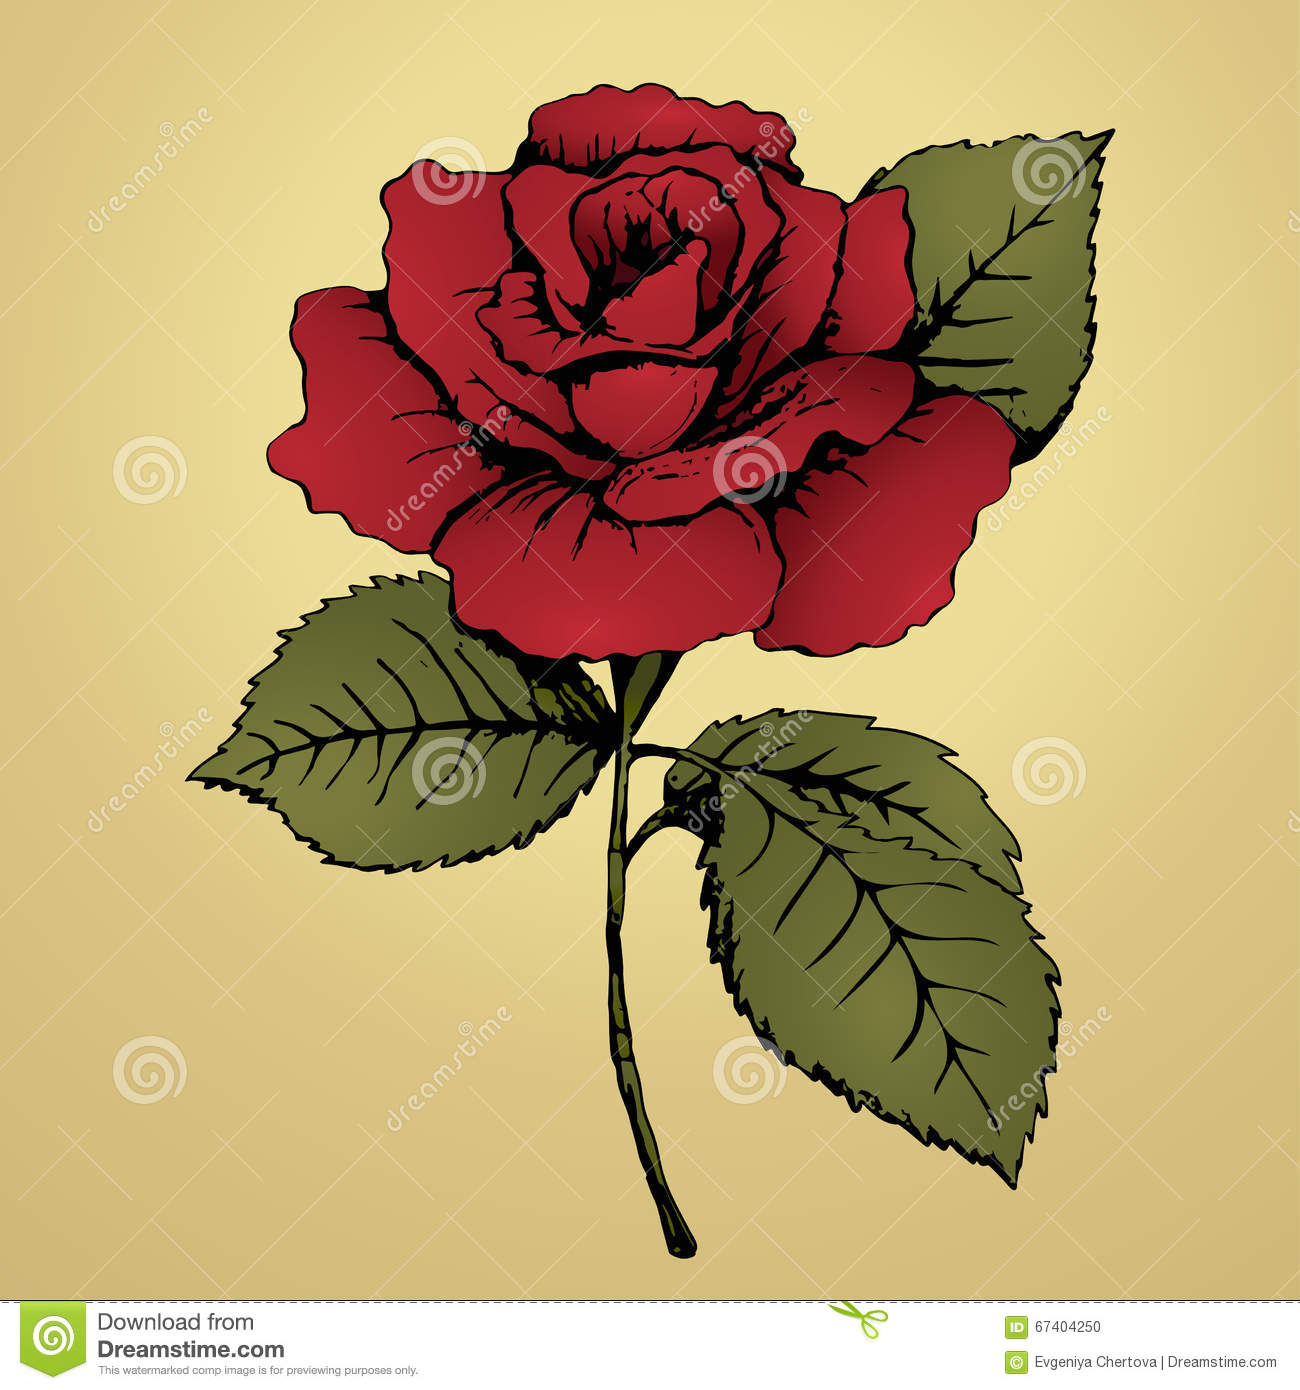 Flower Red Rose Hand Drawing Bud Red Petals Green Leaves